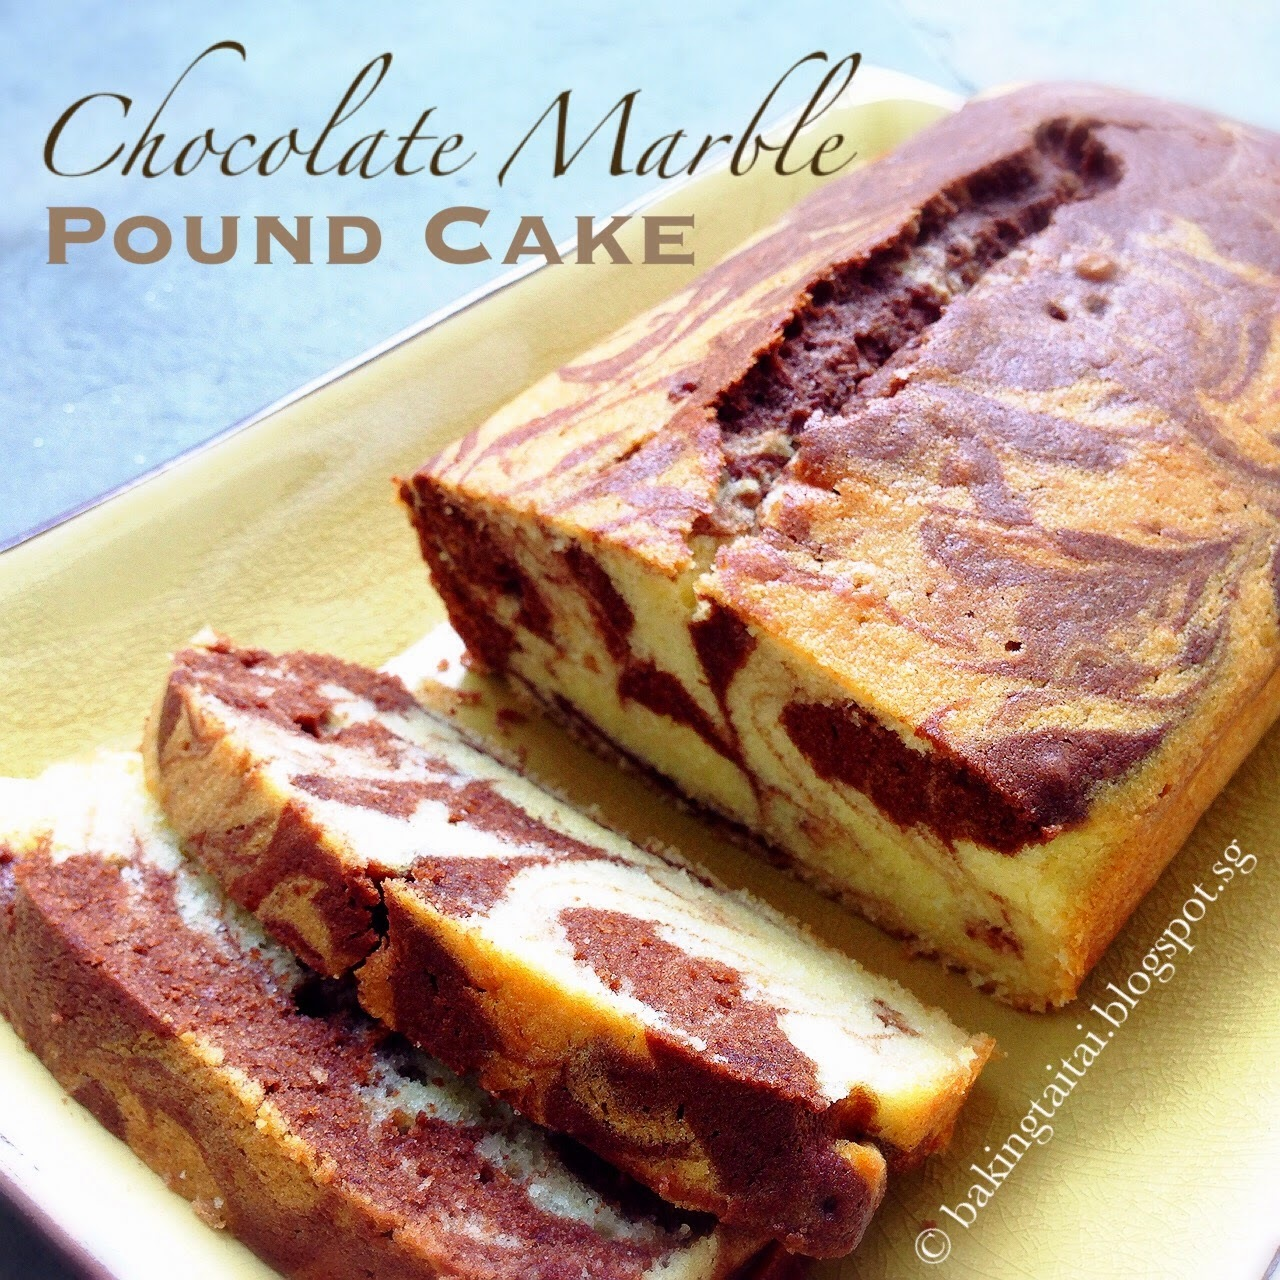 Chocolate Marble Pound Cake  巧克力大理石磅蛋糕 (中英食谱教程)